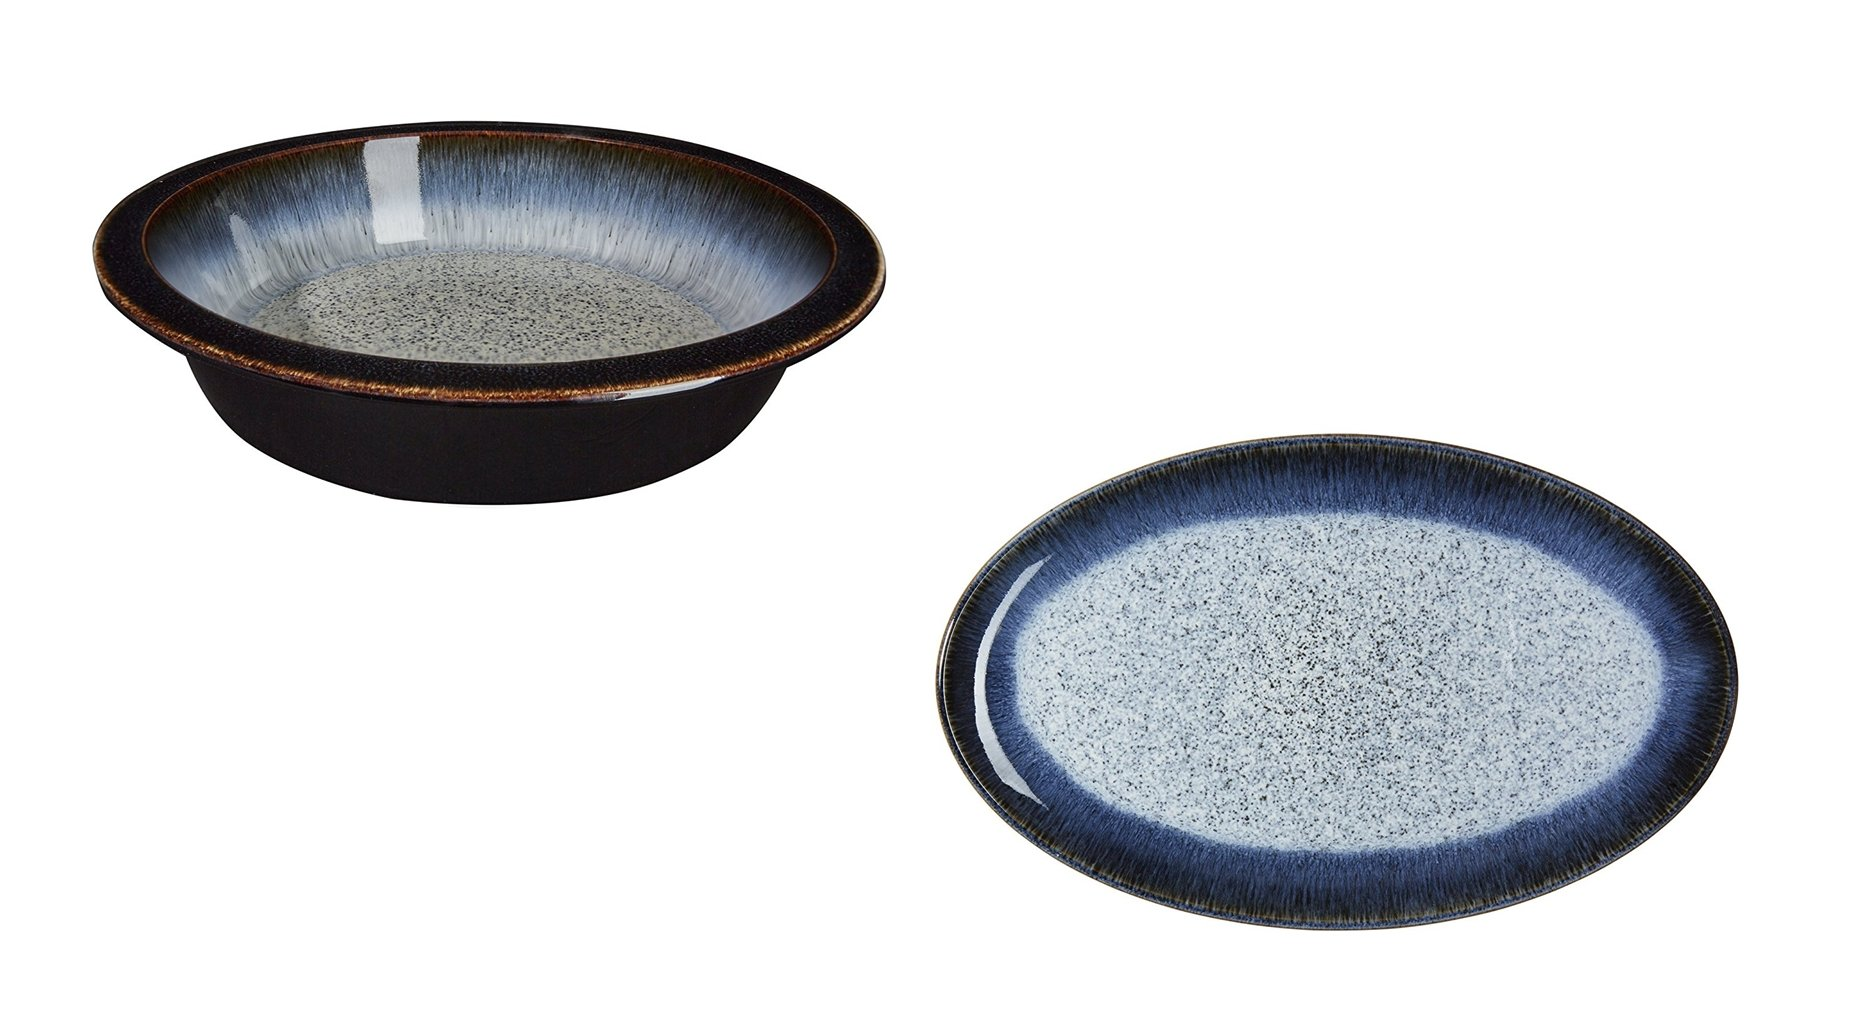 Denby Halo Round Pie Dish and Oval Platter, Set of 2